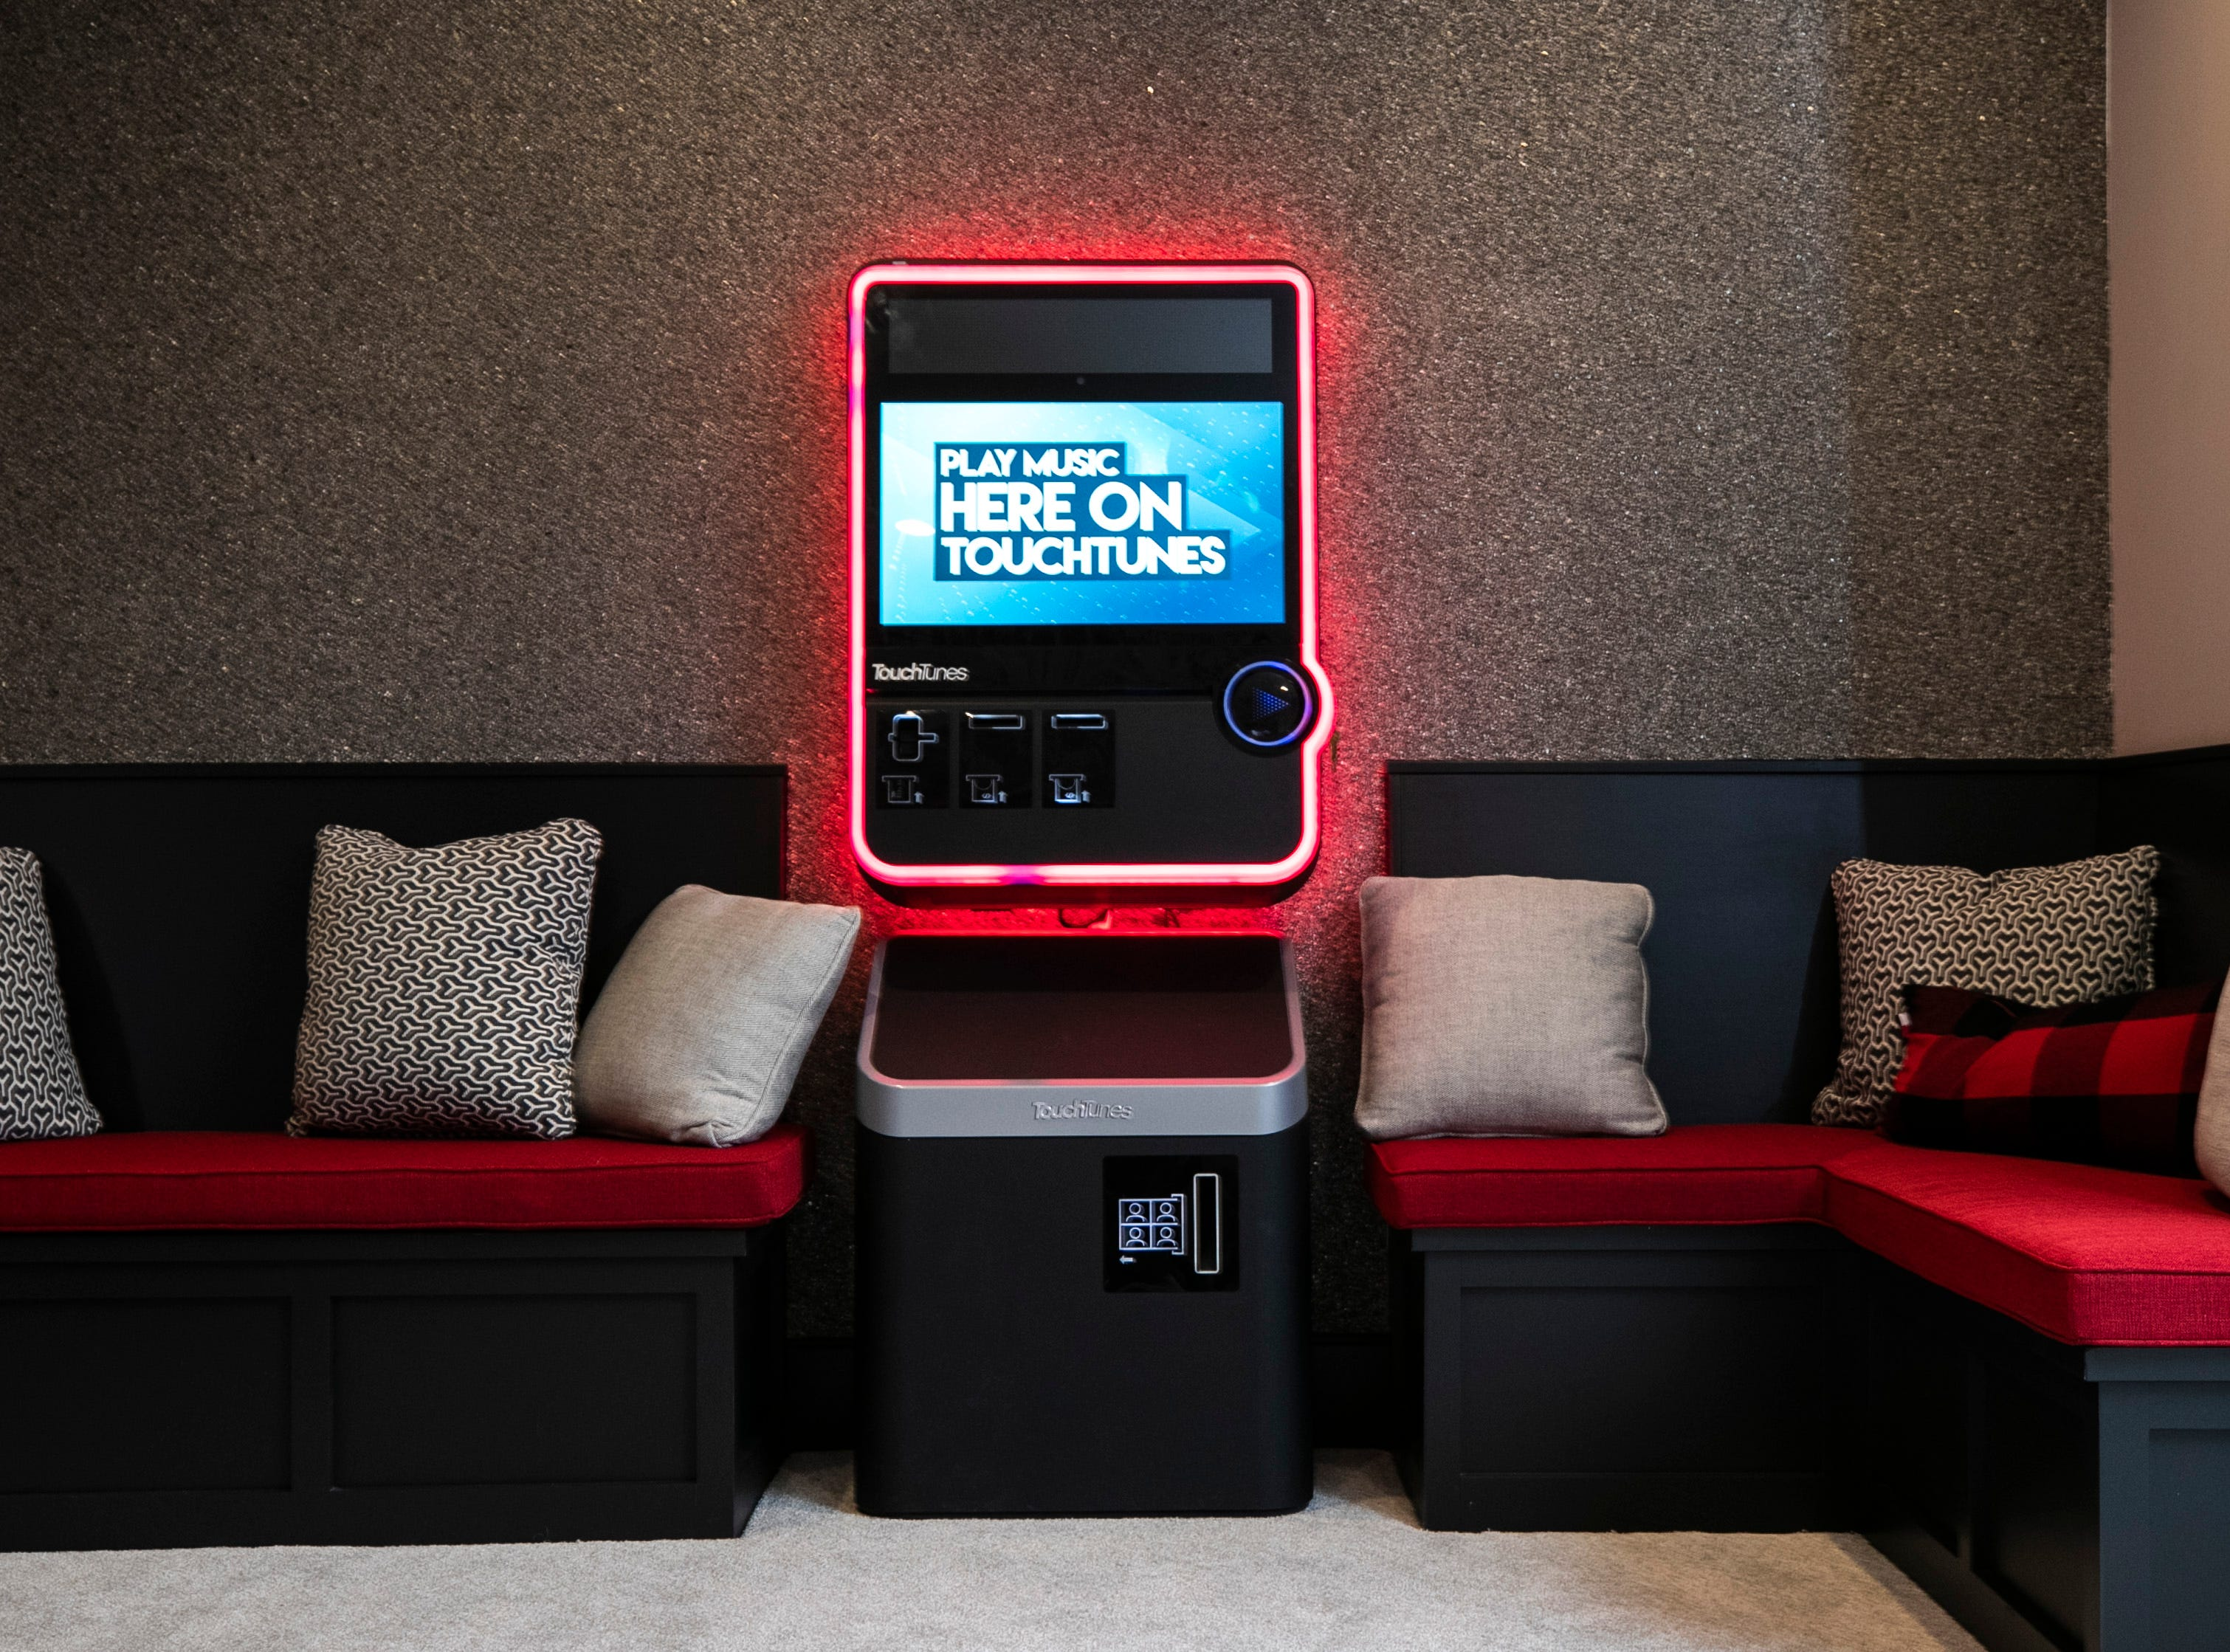 The basement of the Mack home features a digital jukebox.